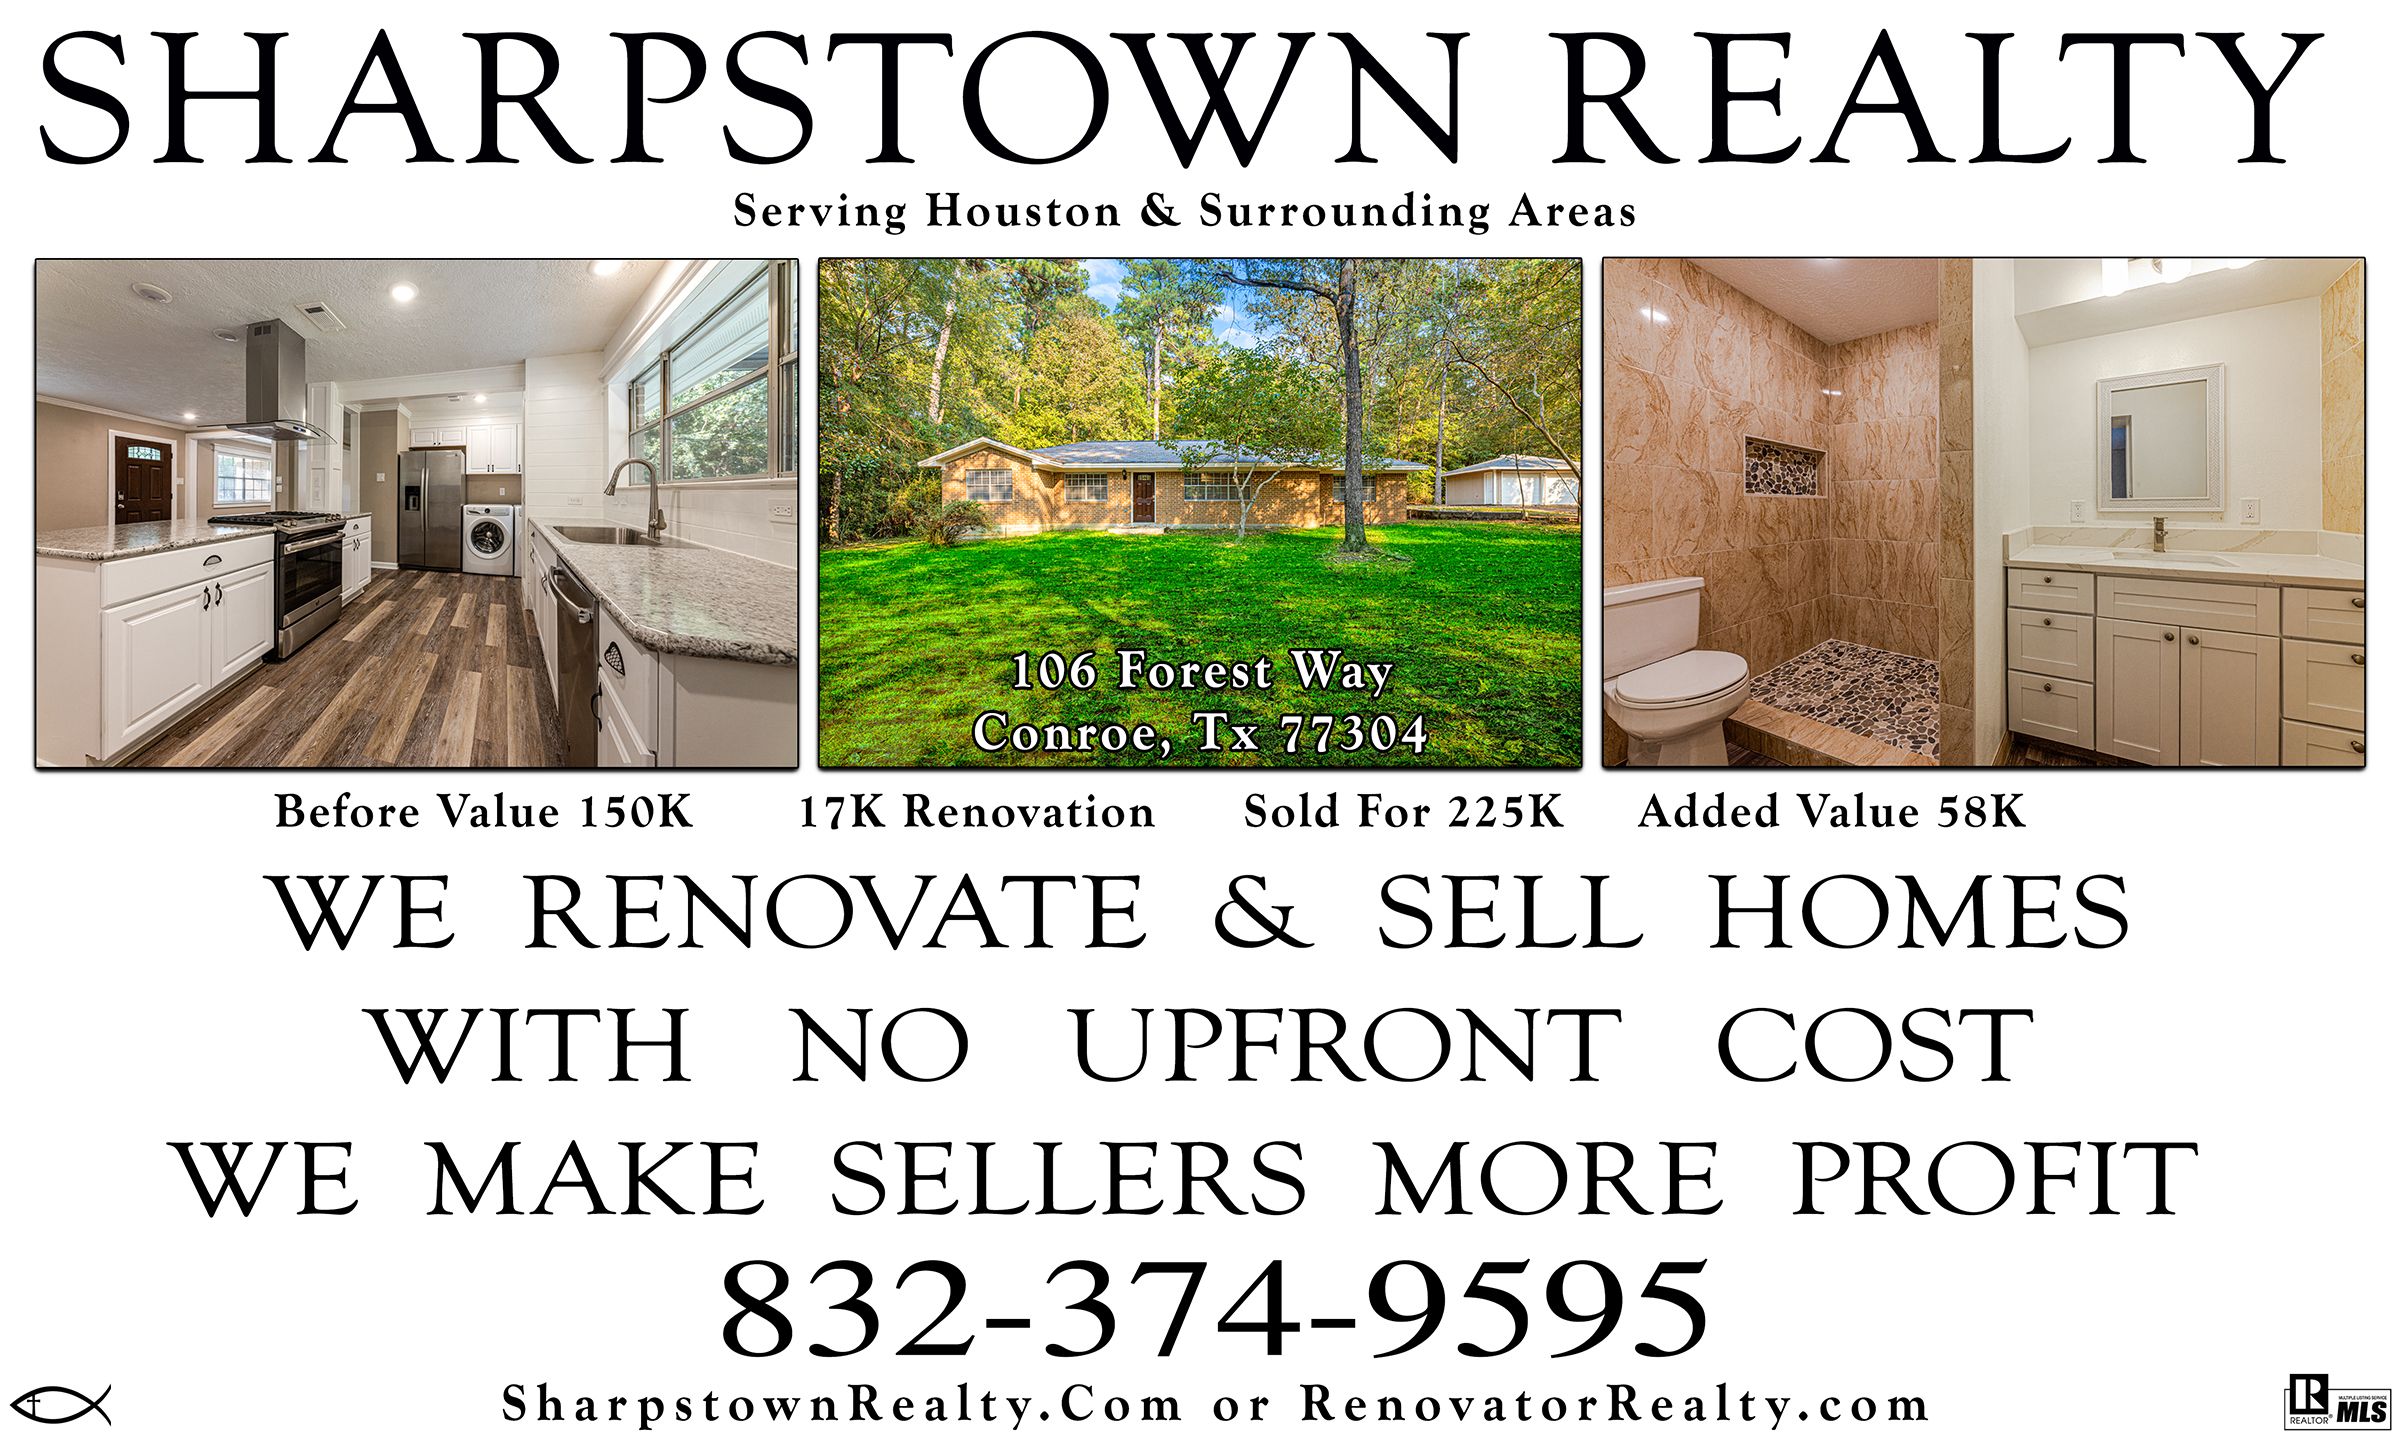 Banner image for sharpstown Realty website